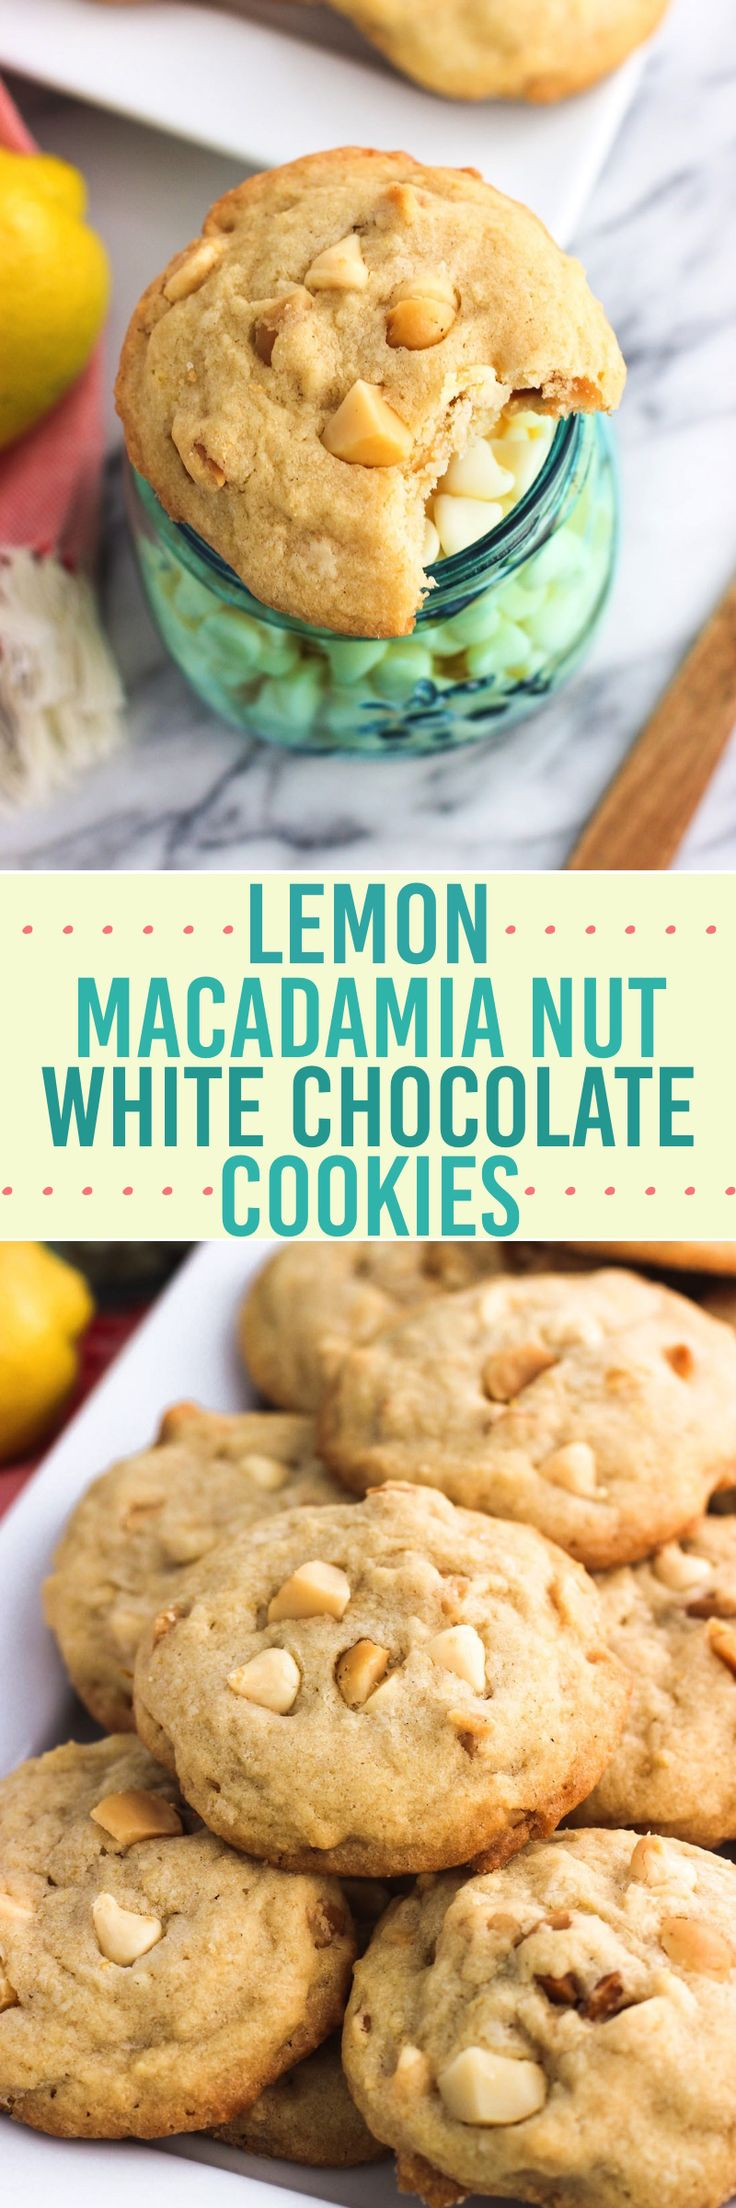 These lemon macadamia nut cookies are ultra chewy with a perfect hint of citrus, toasted macadamia nuts, and white chocolate chips. Love citrus cookies like these!